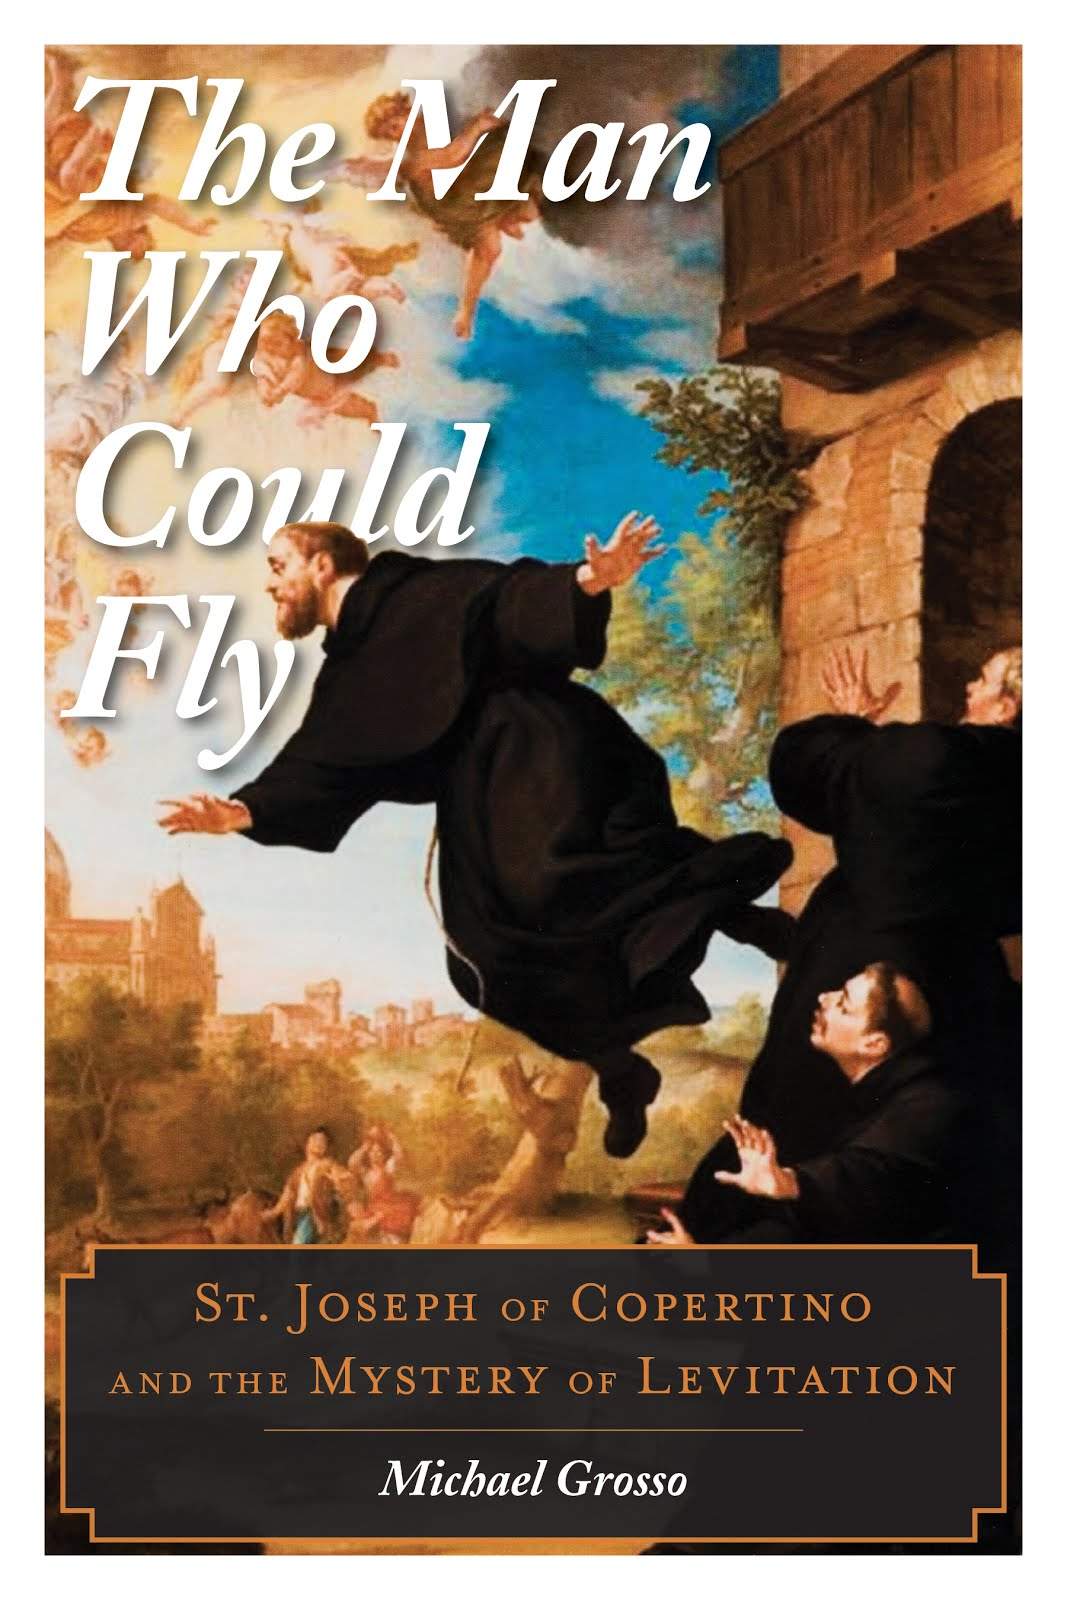 The Man Who Could Fly by Michael Grosso